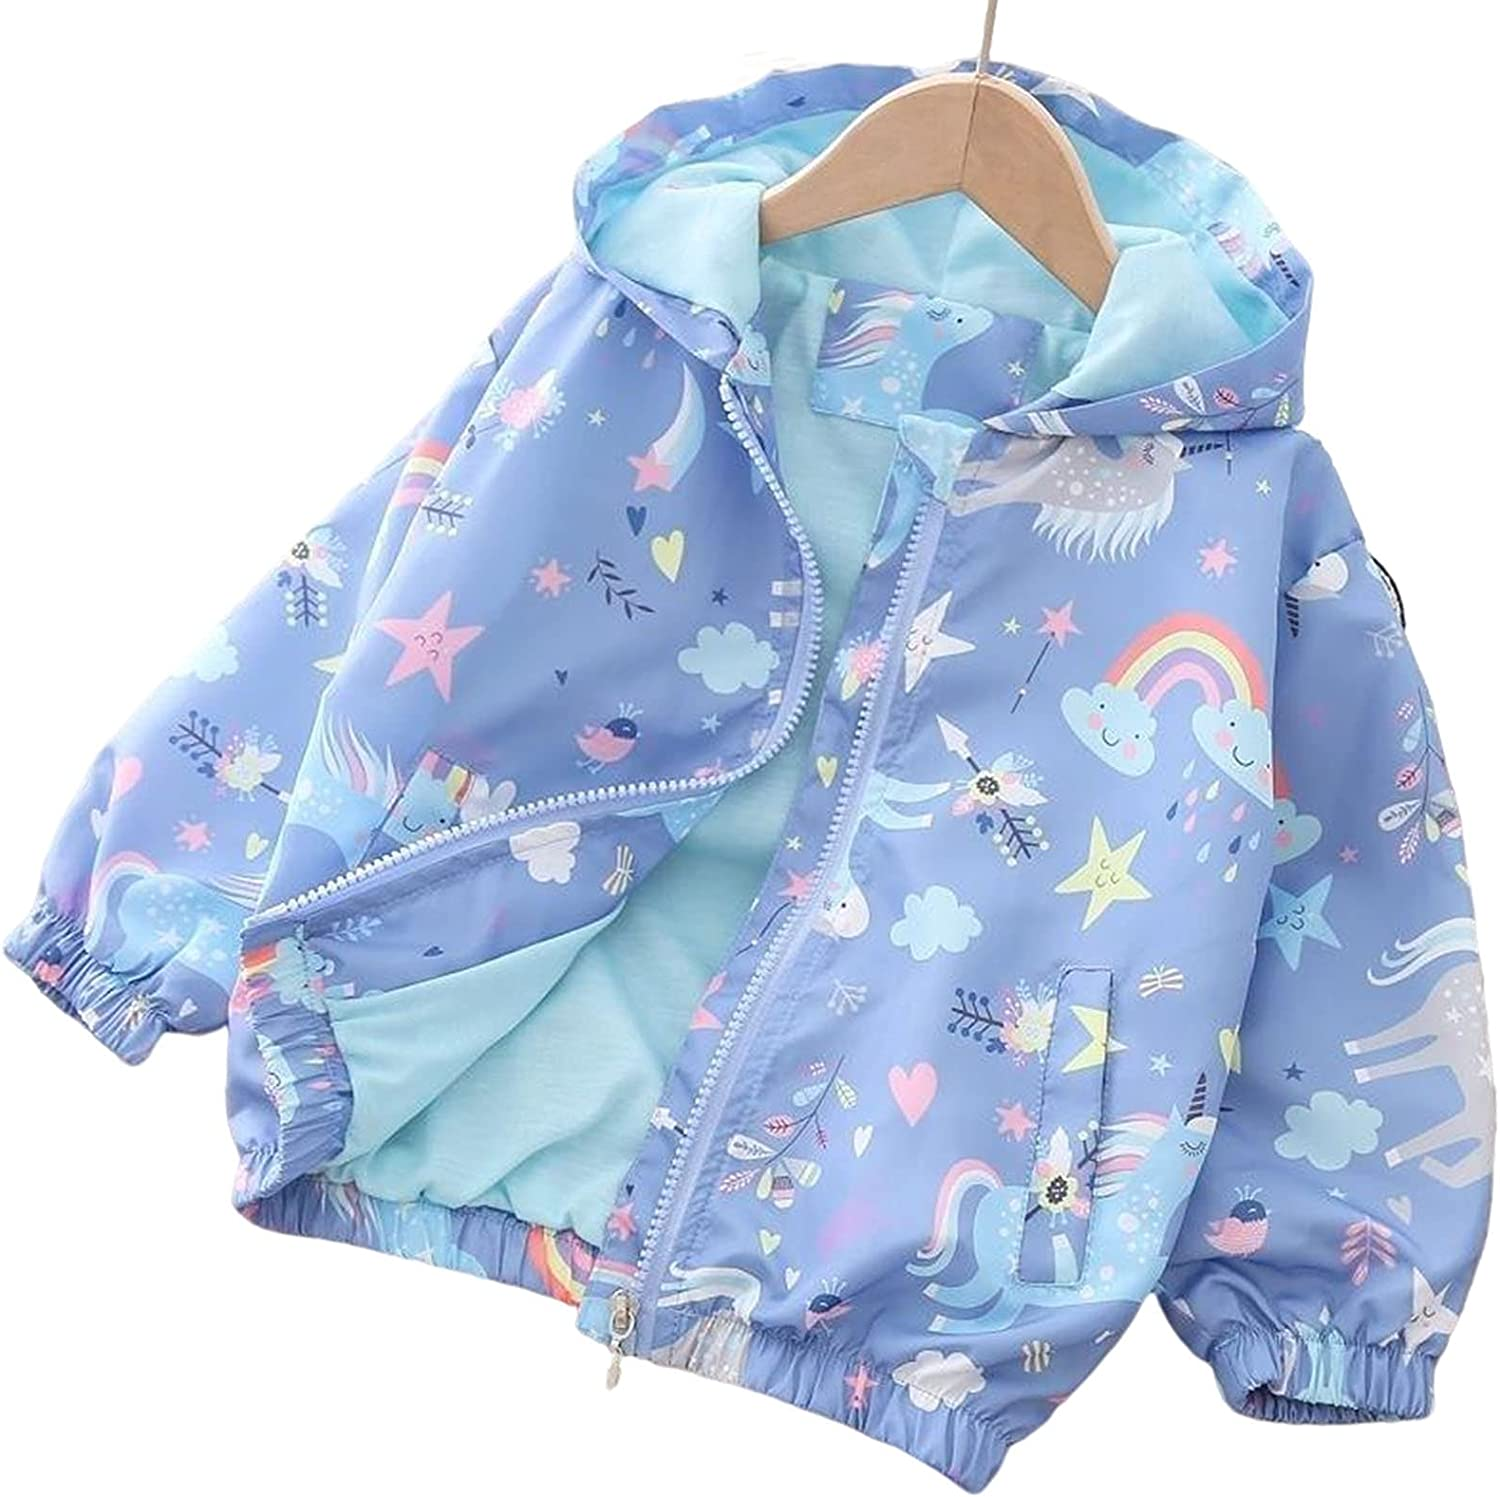 Toddler In a popularity Fall Jackets Girls Unicorn Spring Cheap super special price Outerwear Windbreaker